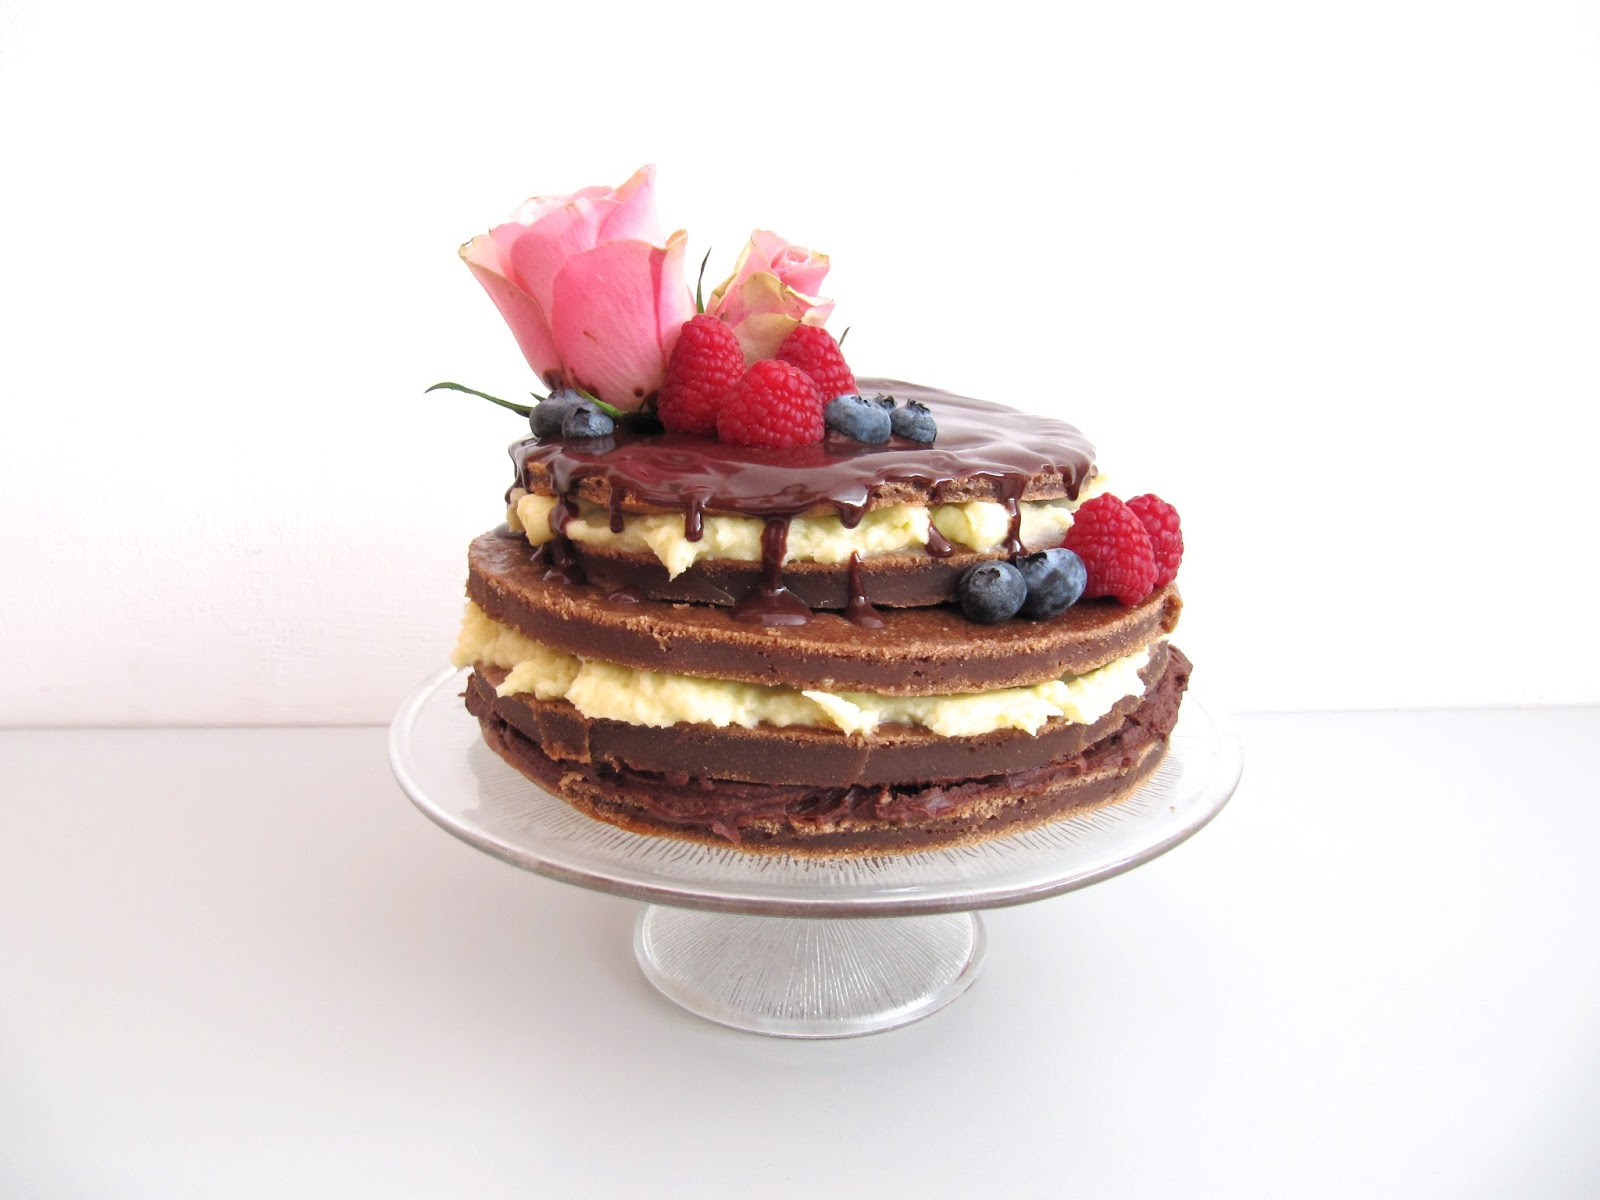 naked cake mit schokoladen ganache frischk se frosting mimiloves. Black Bedroom Furniture Sets. Home Design Ideas